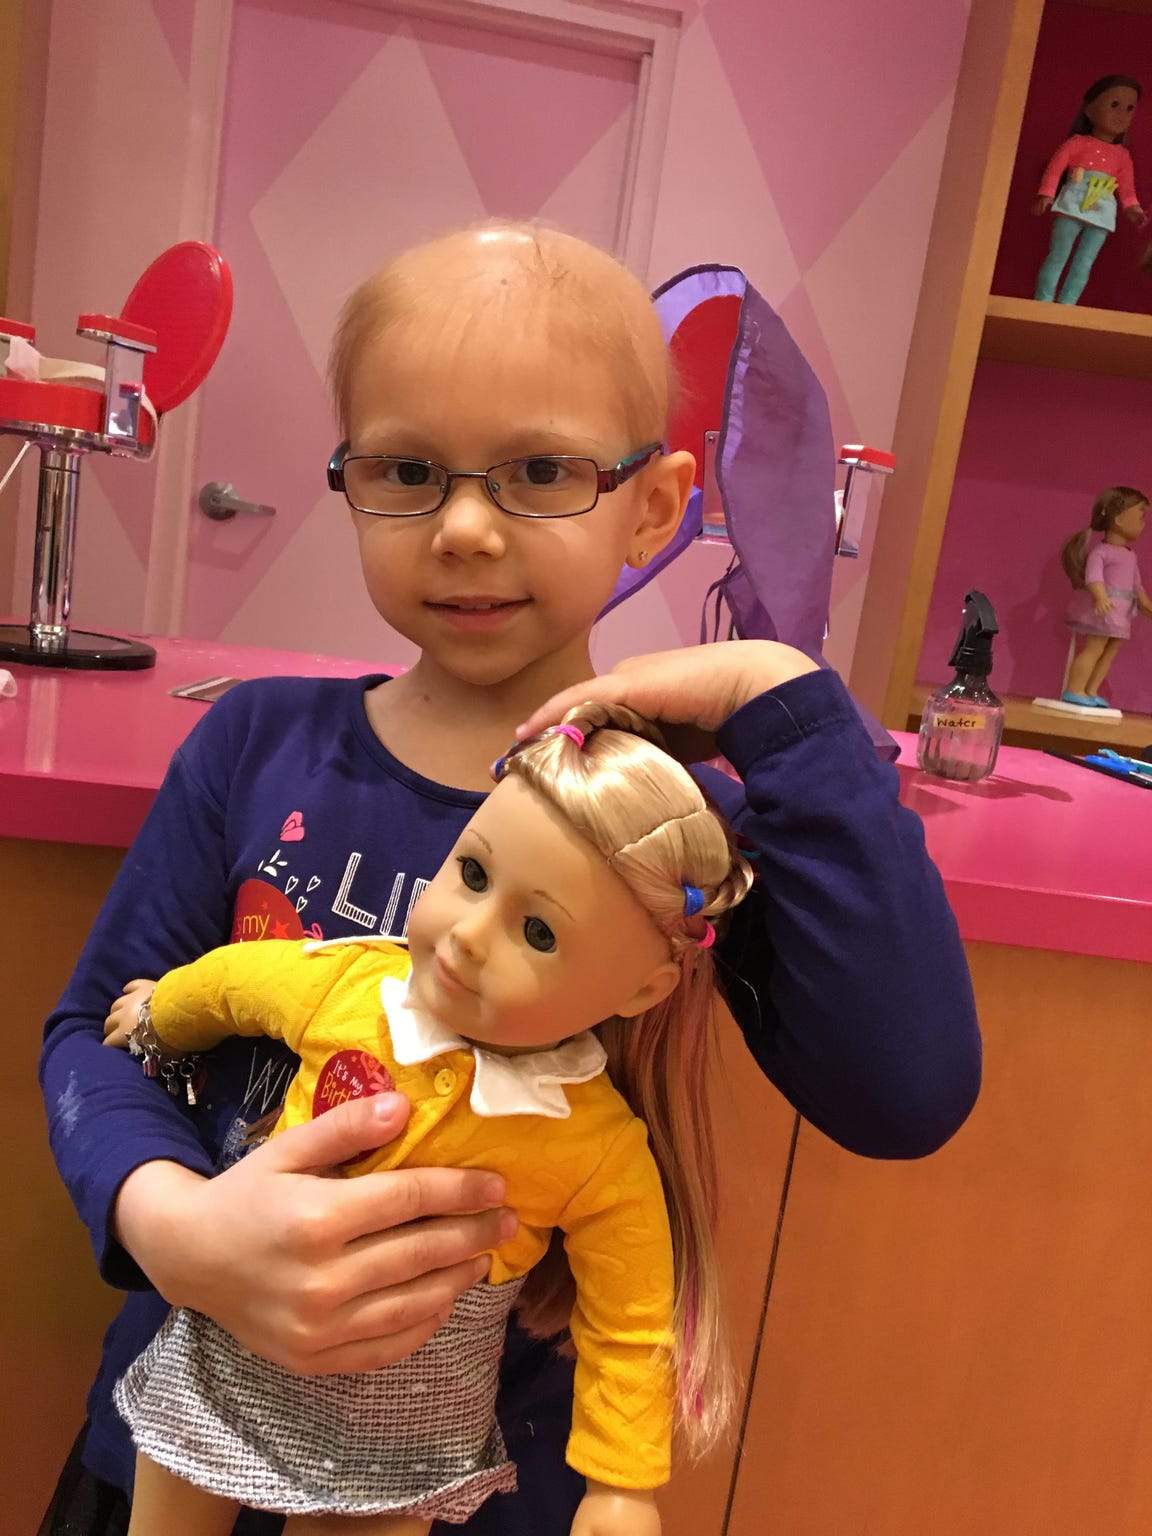 Rhyan Loos has undergone five cycles of chemotherapy